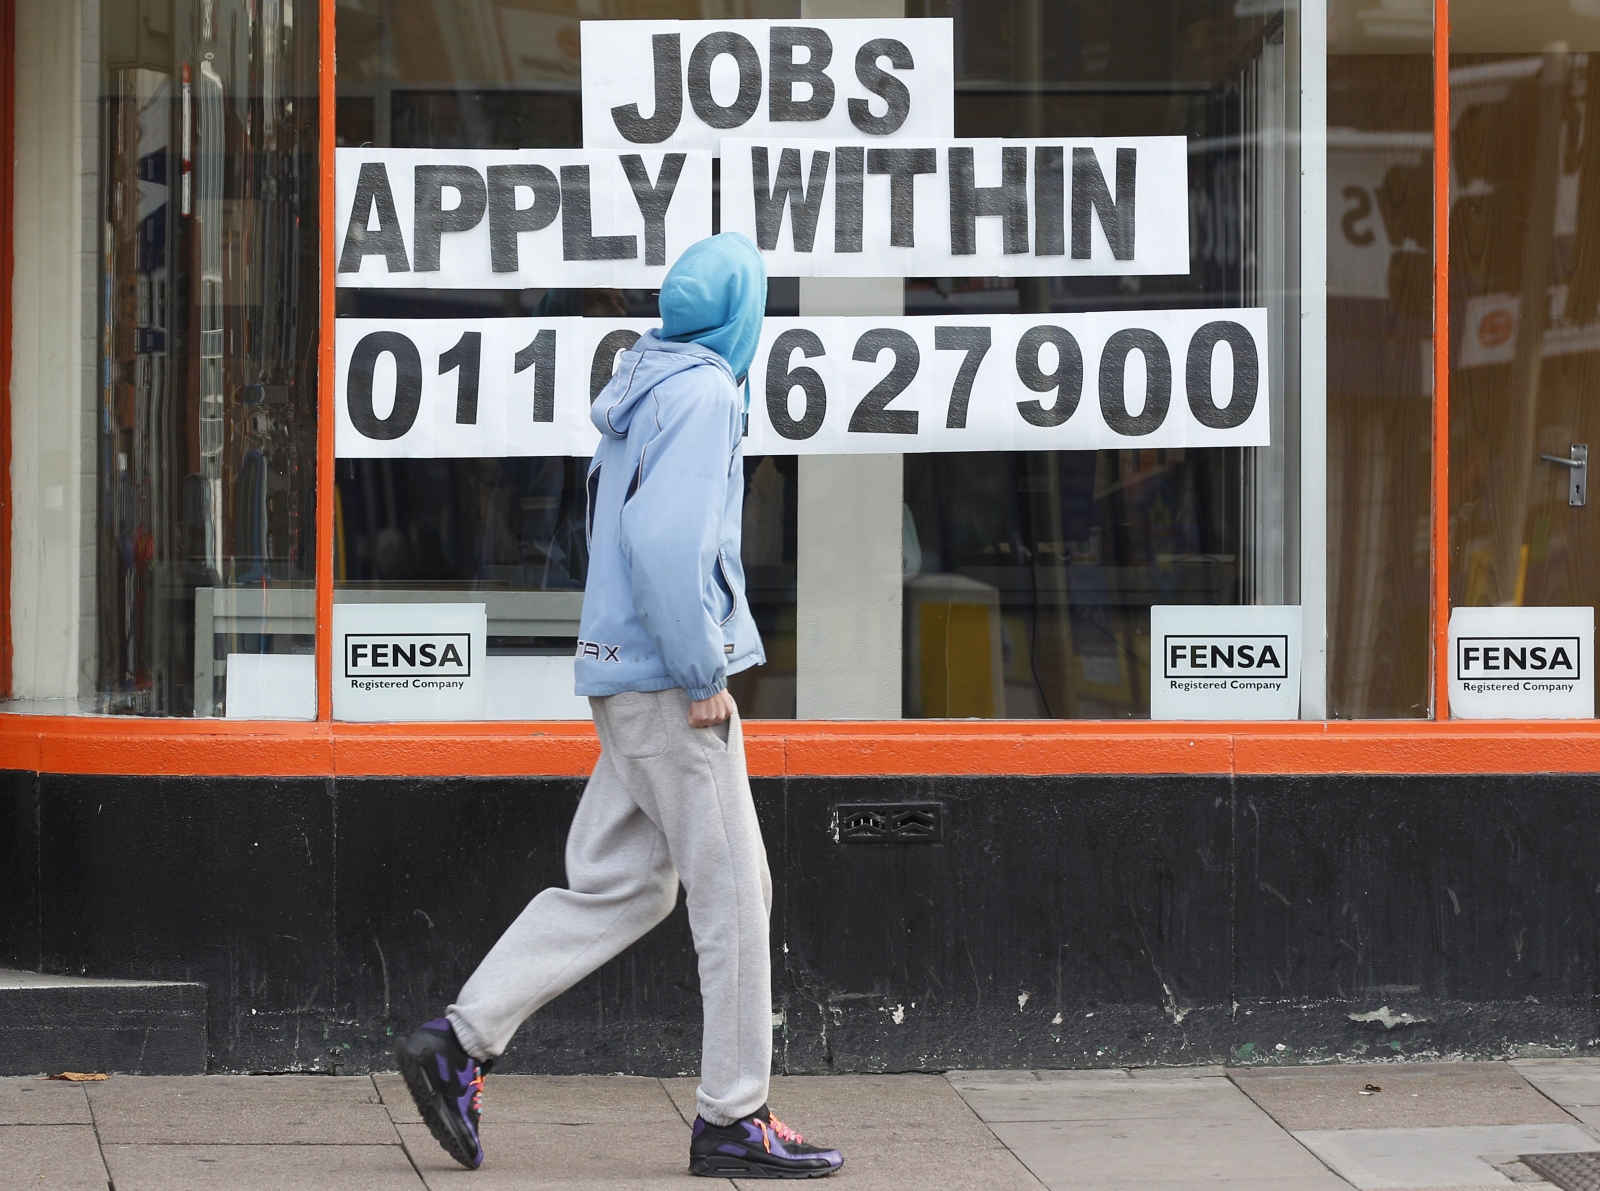 Zero hours contracts reach record levels